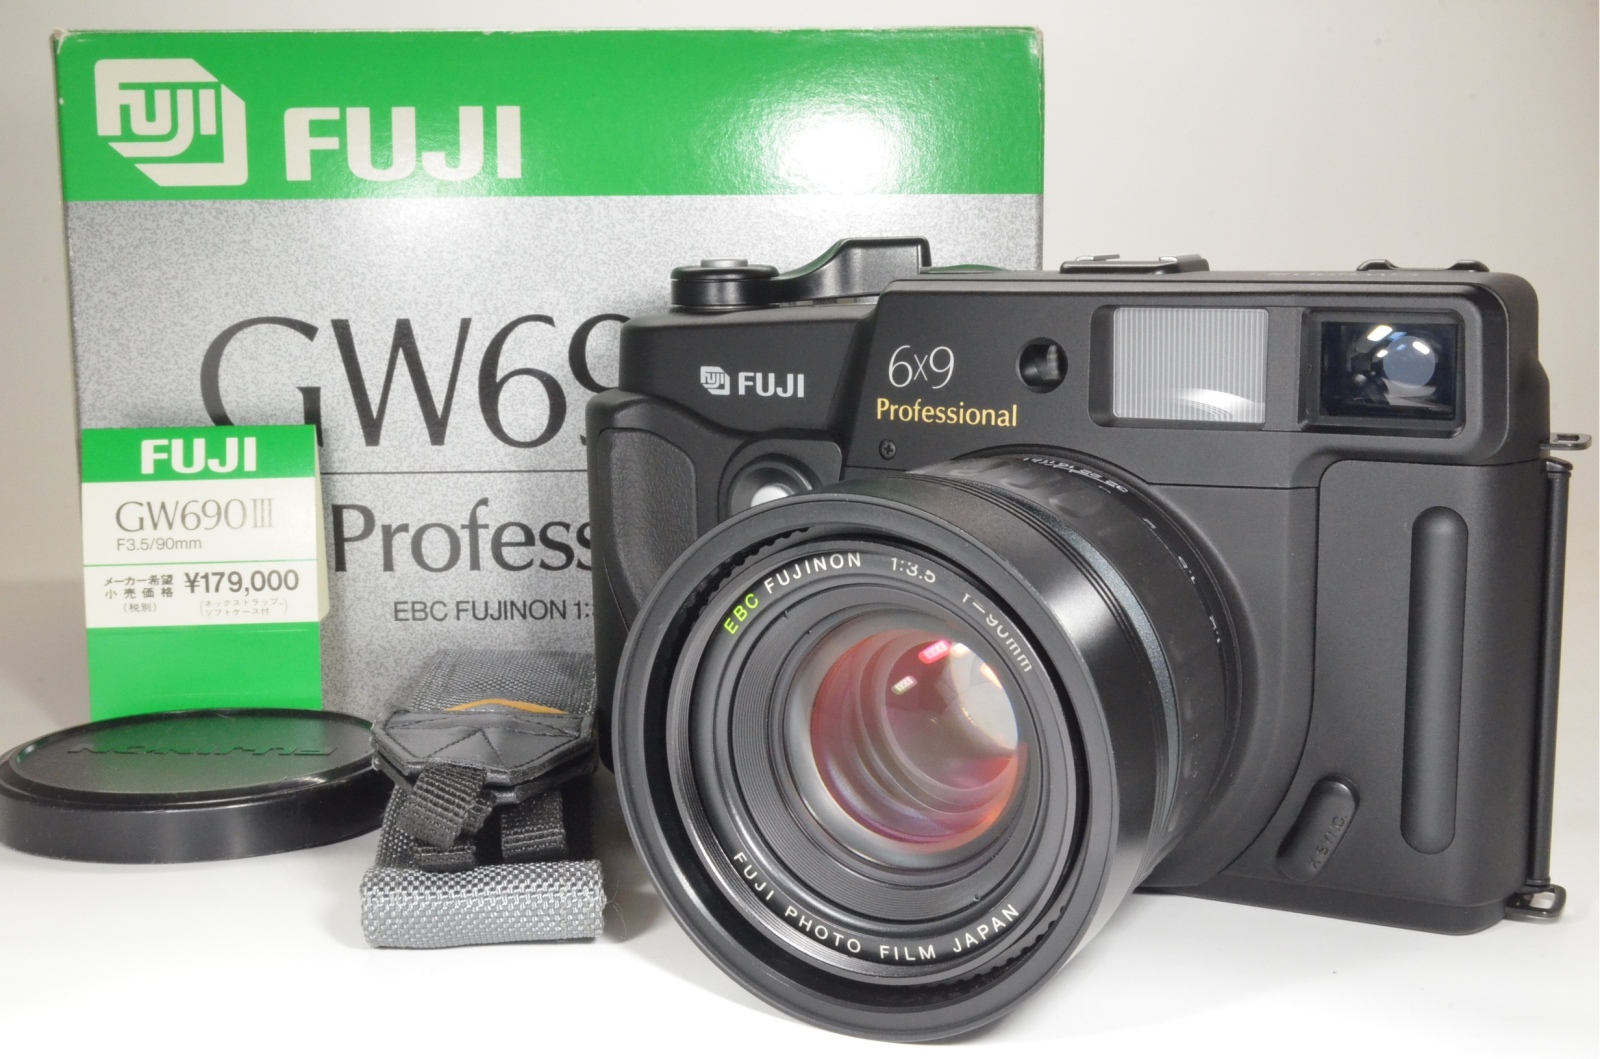 fuji fujifilm gw690iii 90mm f3.5 medium format count only '003' very rare!